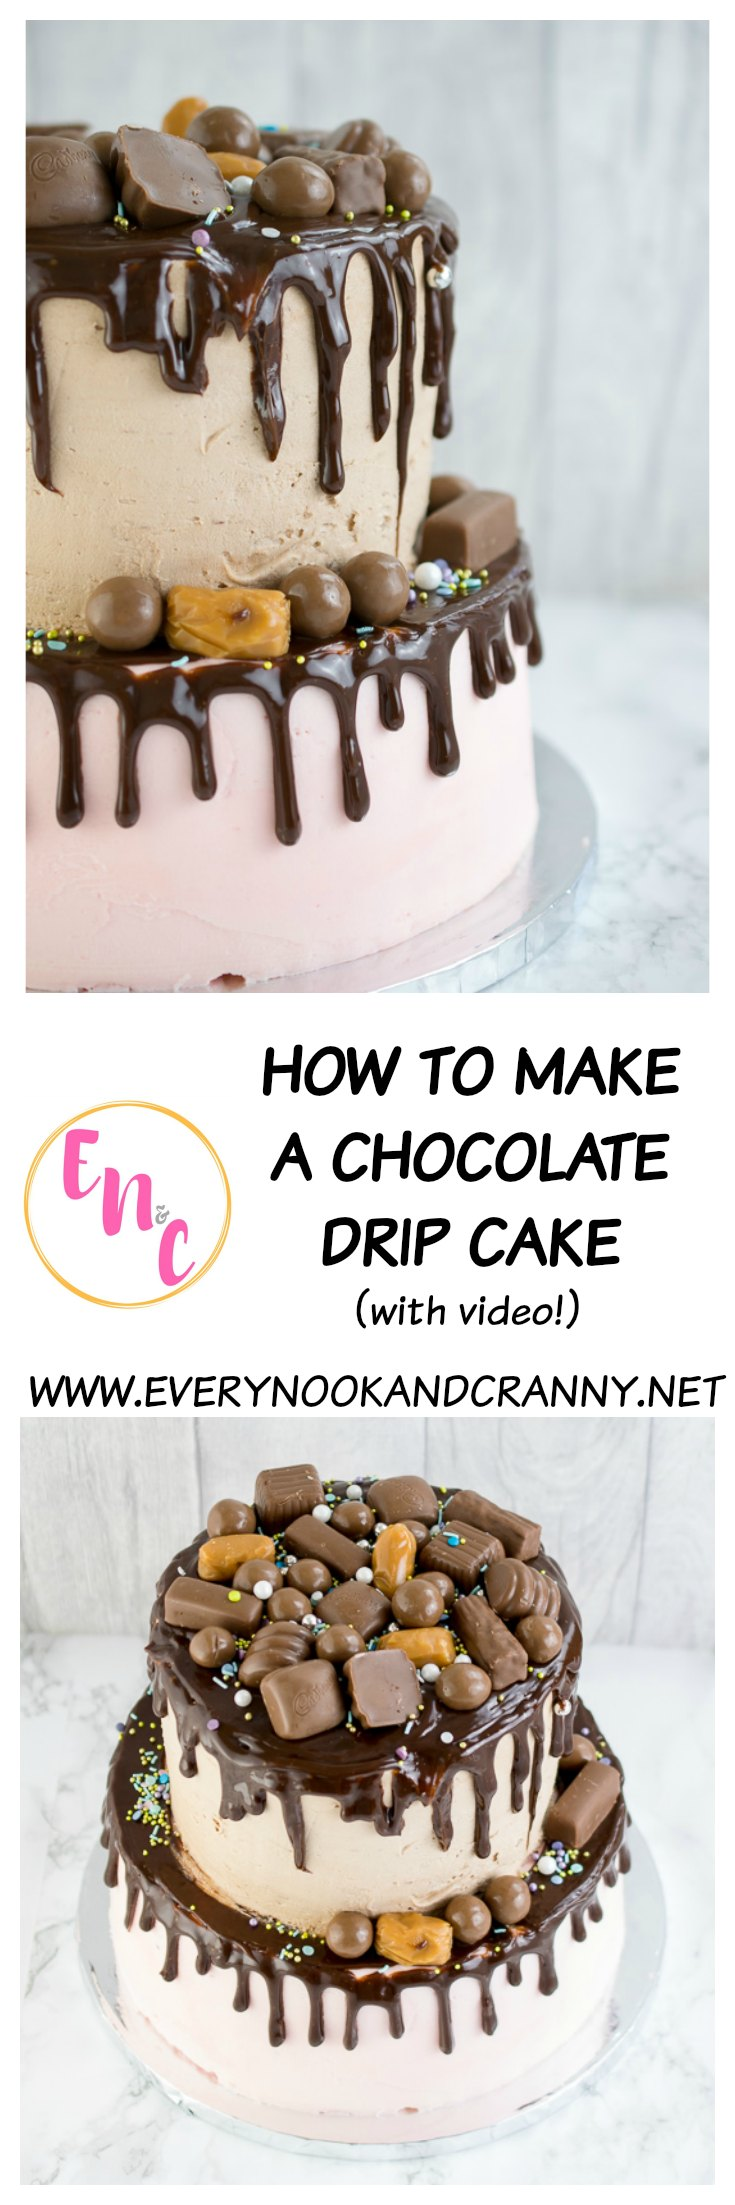 How to make a chocolate overload drip cake with video to help you!